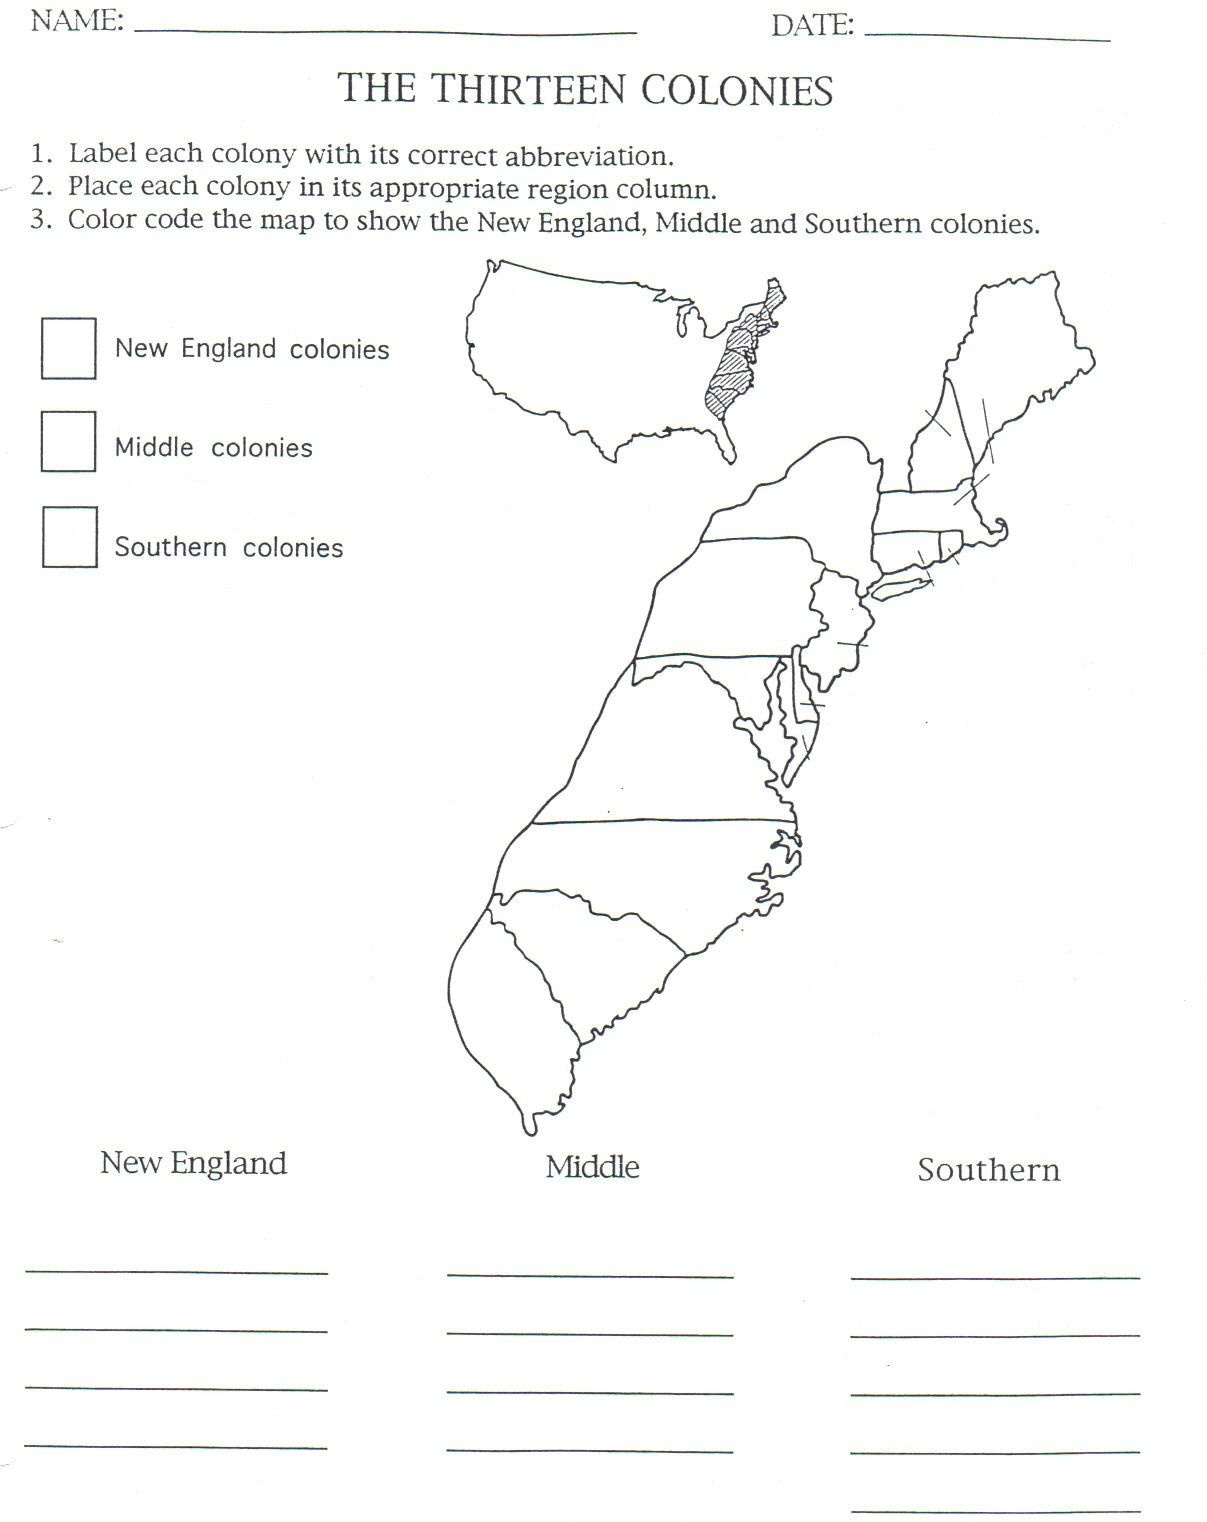 13 Colonies Map To Color And Label, Although Notice That They Have - 13 Colonies Blank Map Printable